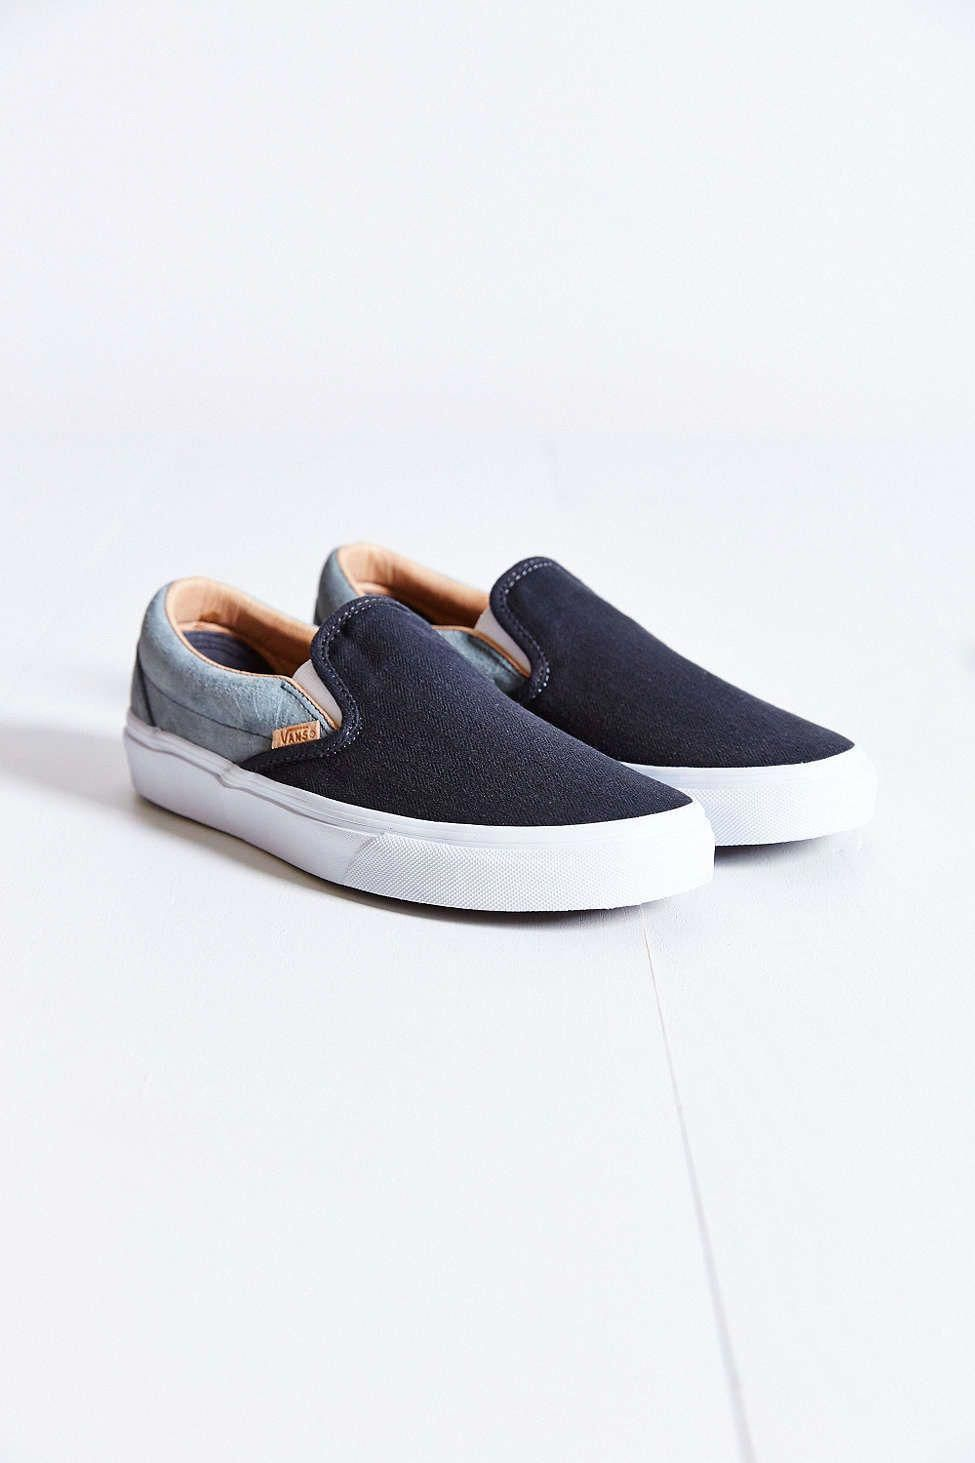 Sneakerurbanoutfitters Suede Classic Knit Vans Slip On Women's f76gyYb